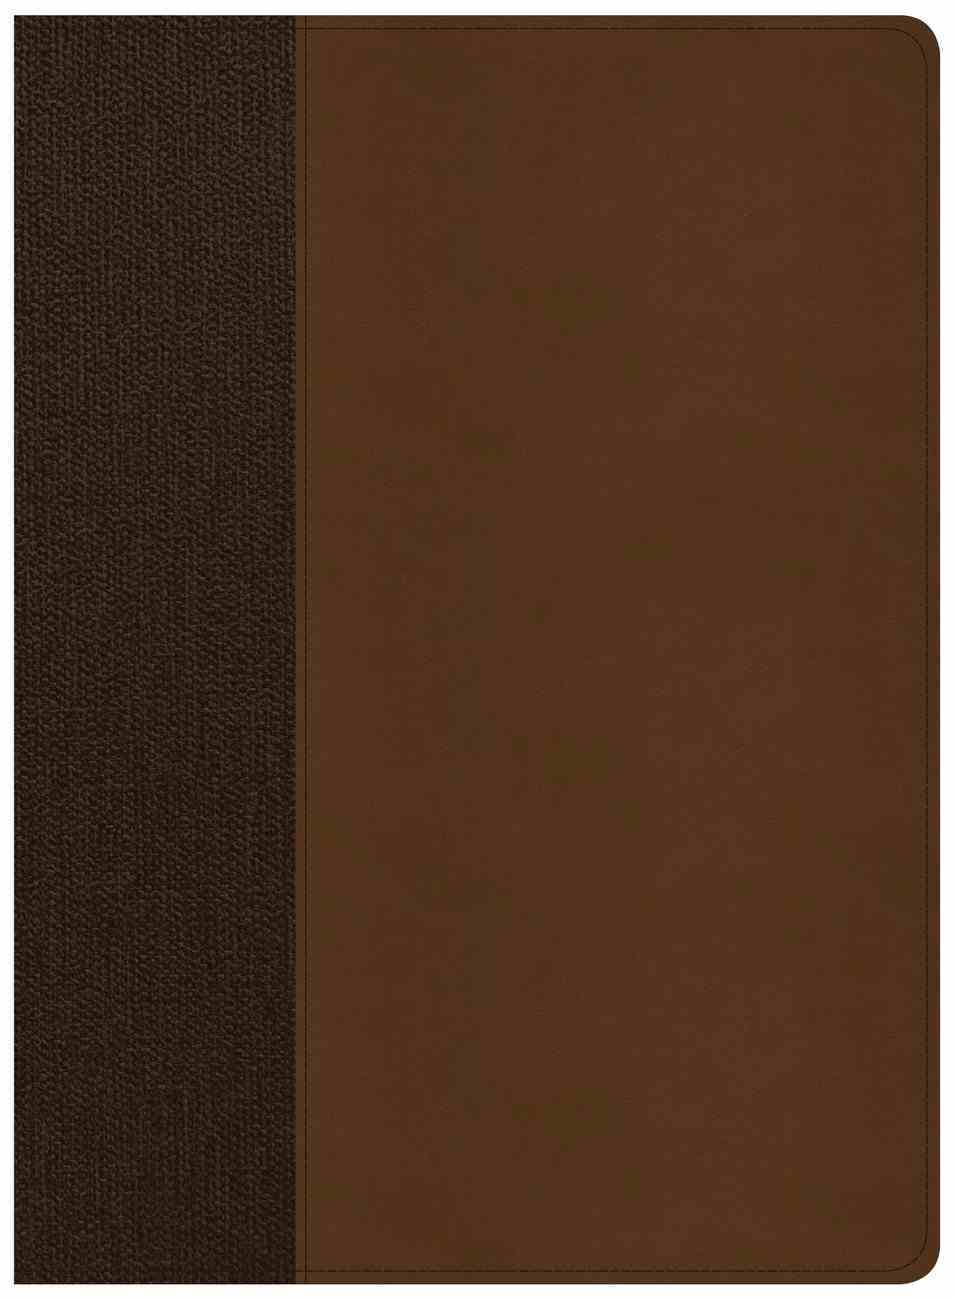 CSB Life Essentials Study Bible Brown (Black Letter Edition) Imitation Leather